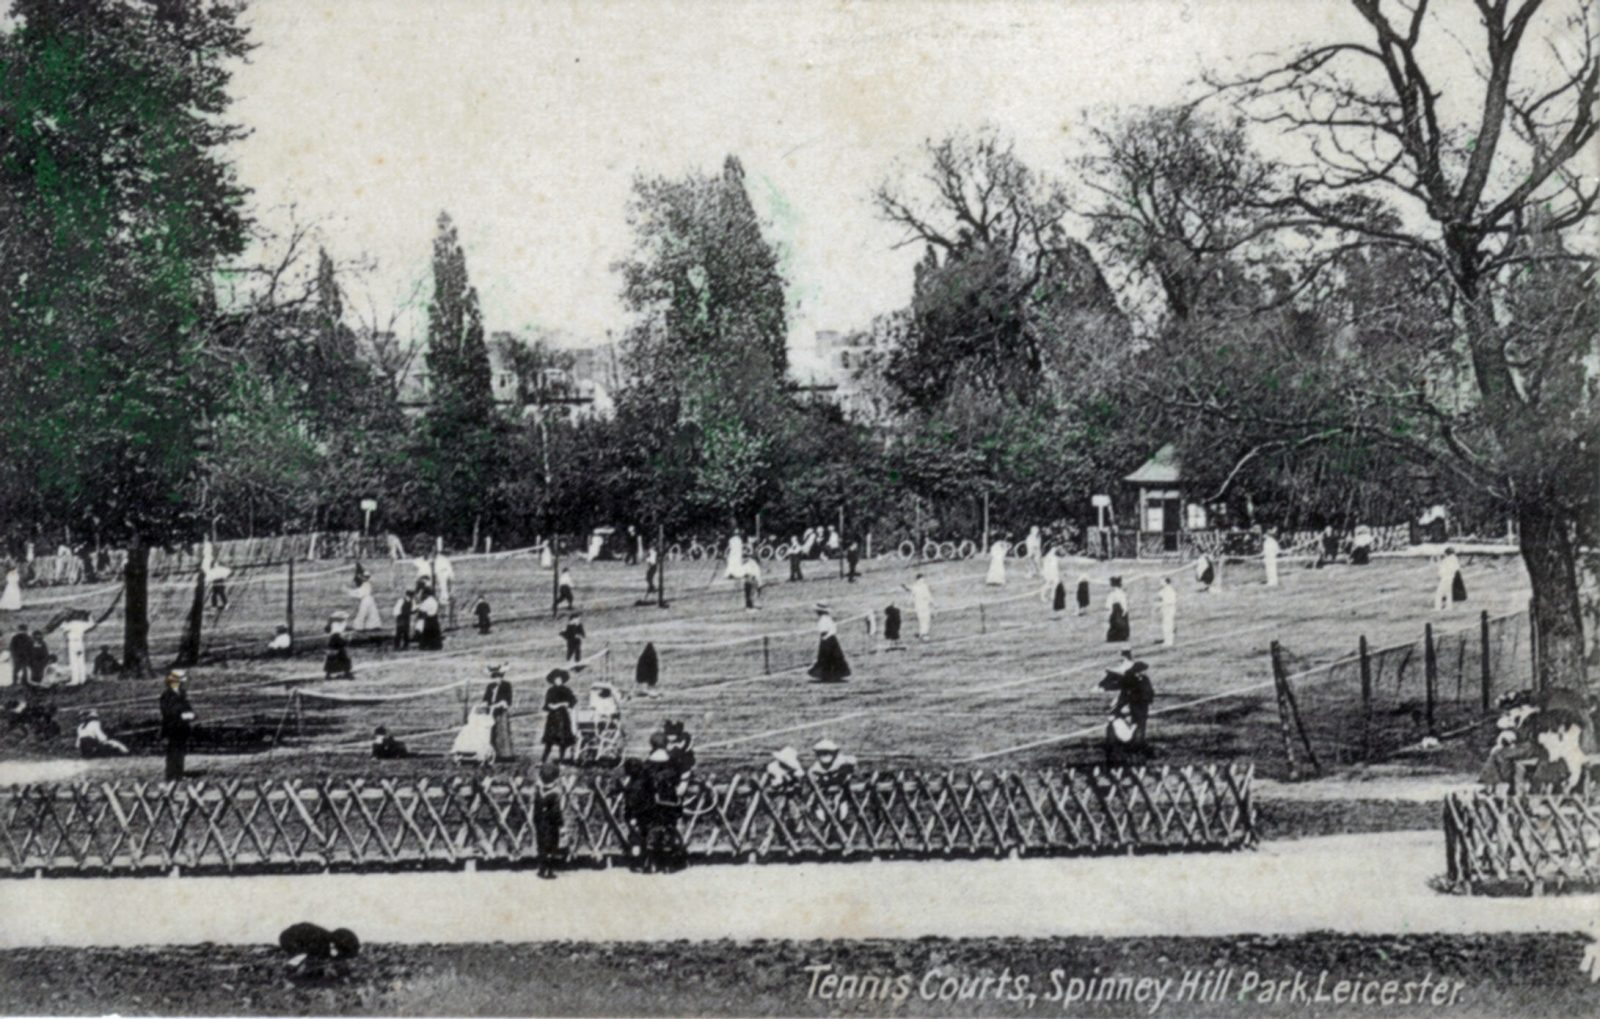 Spinney Hill Park, Leicester. 1901-1920: Tennis courts with adults playing. (File:1064)